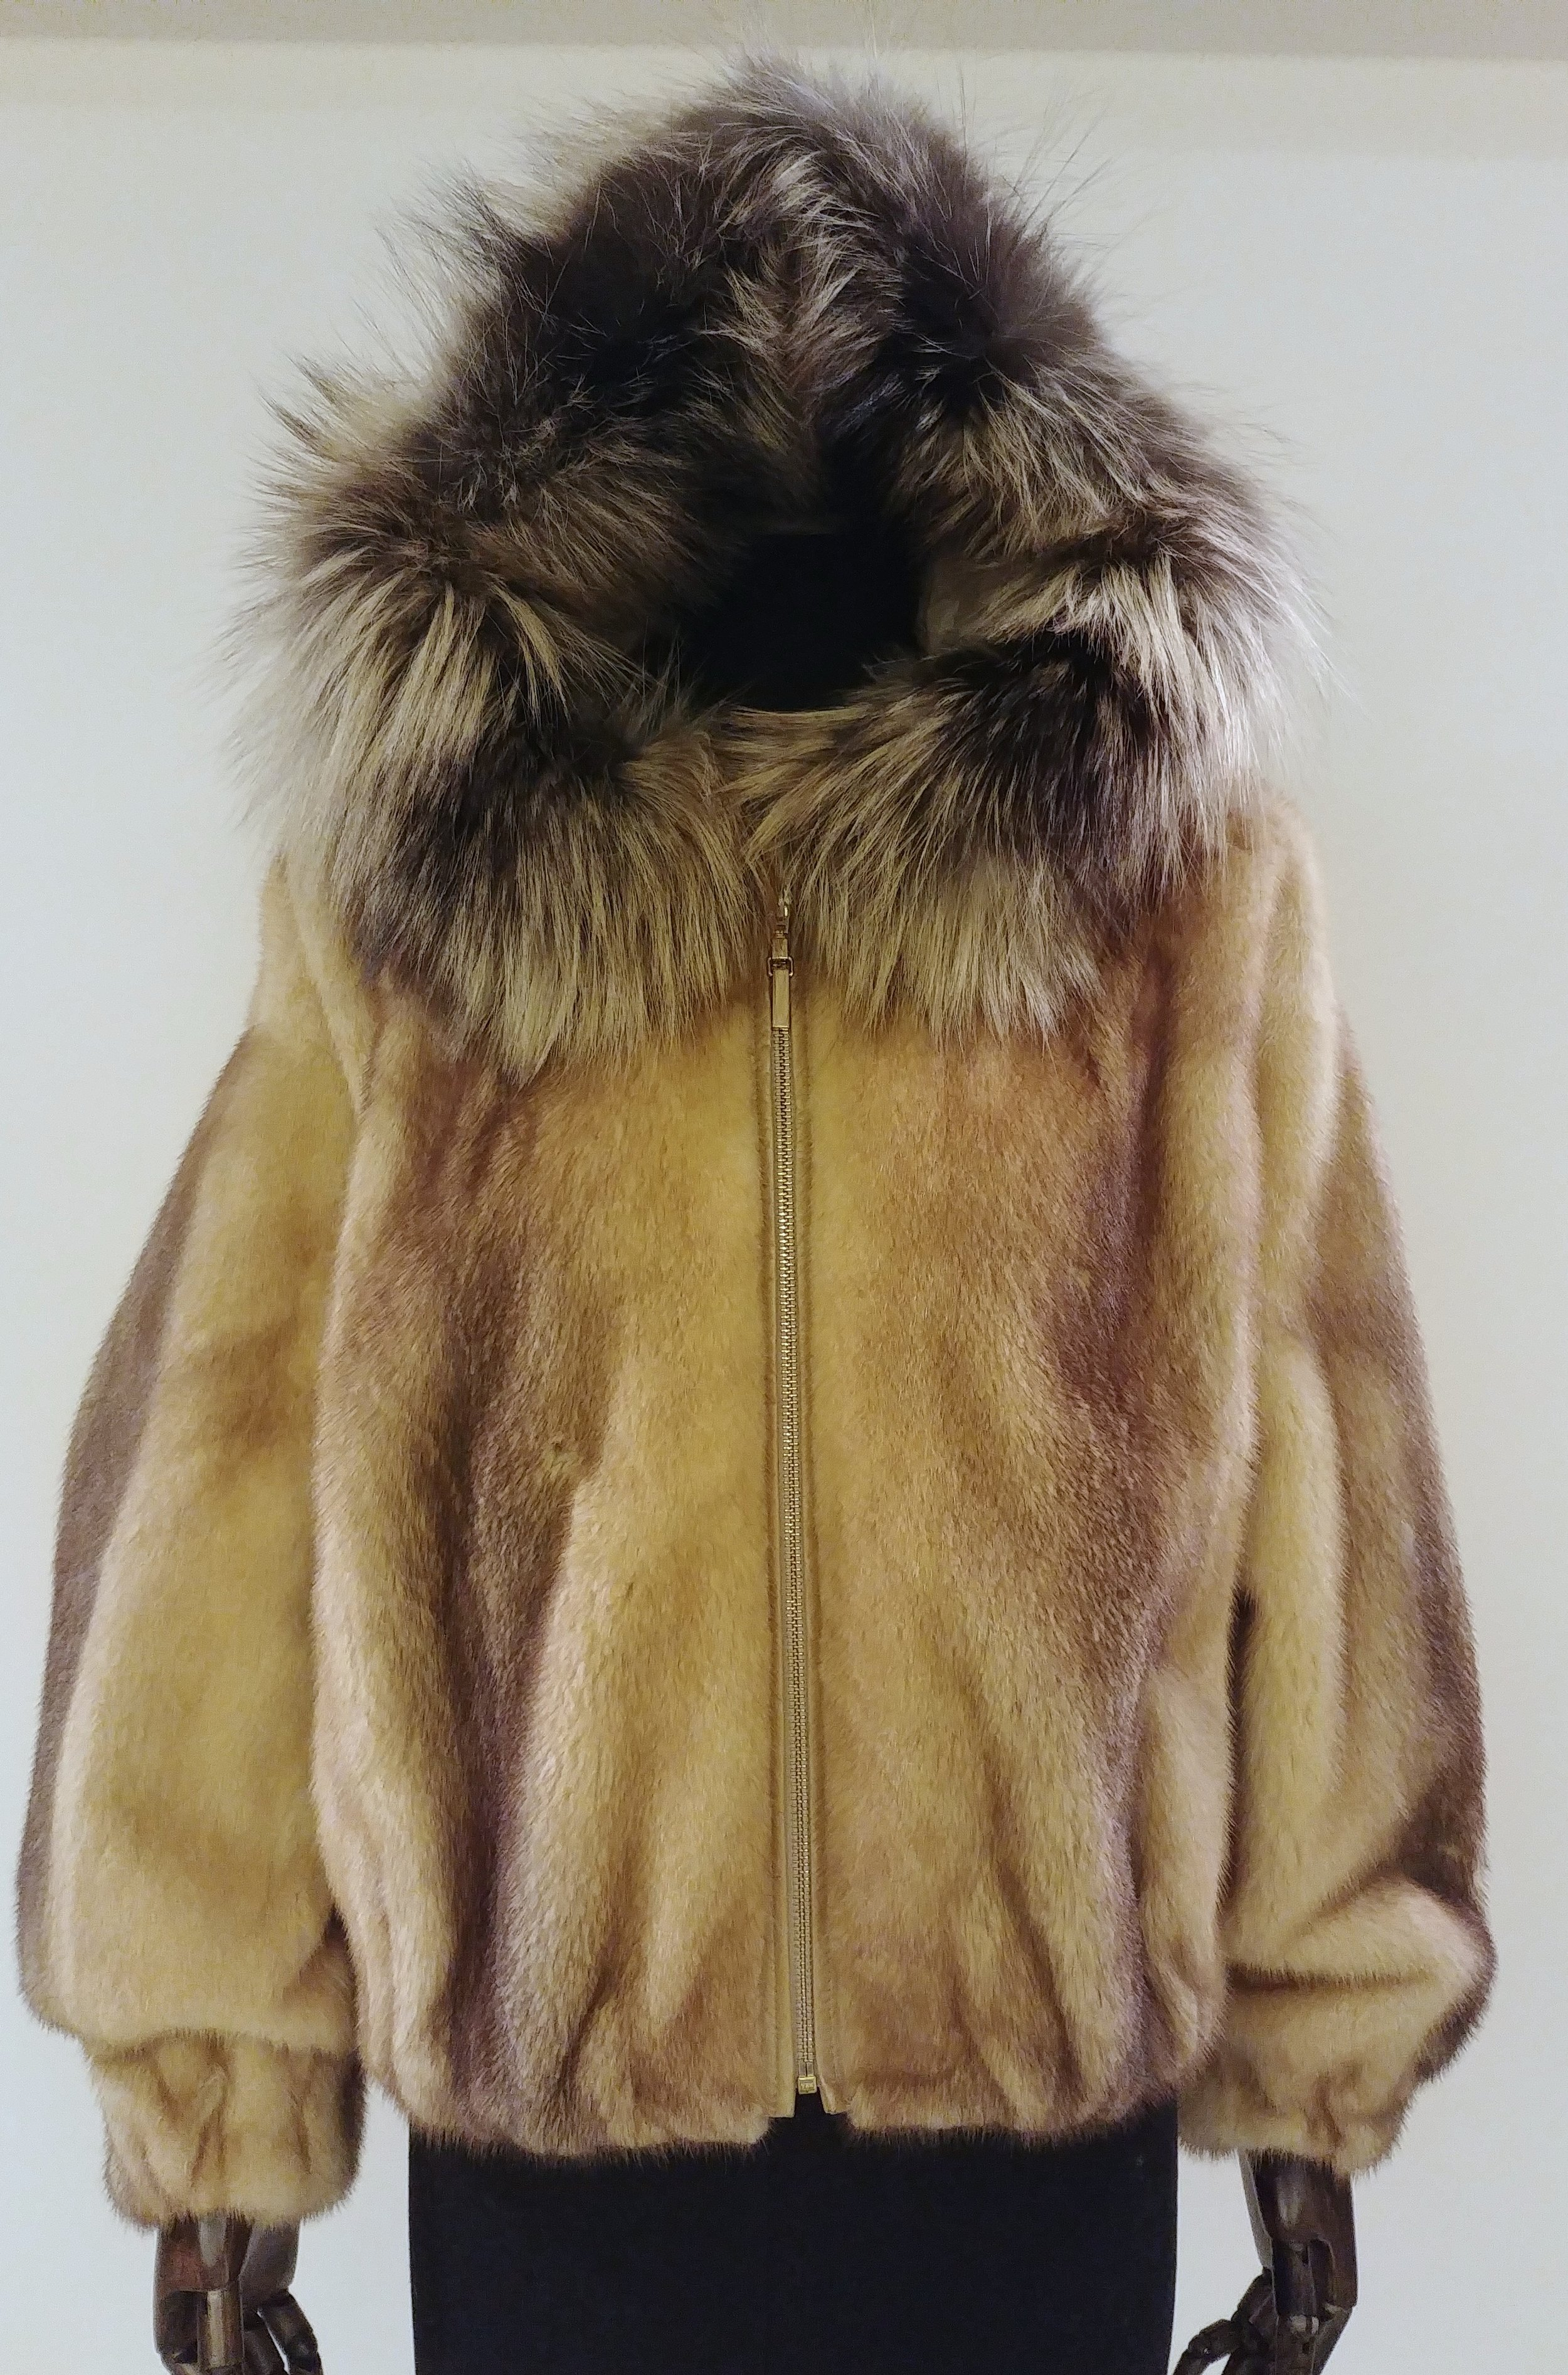 FJ55424CL - 53.5cm Mink Zip Jacket with silver fox hood trimSpecial price: US$900 Available size M